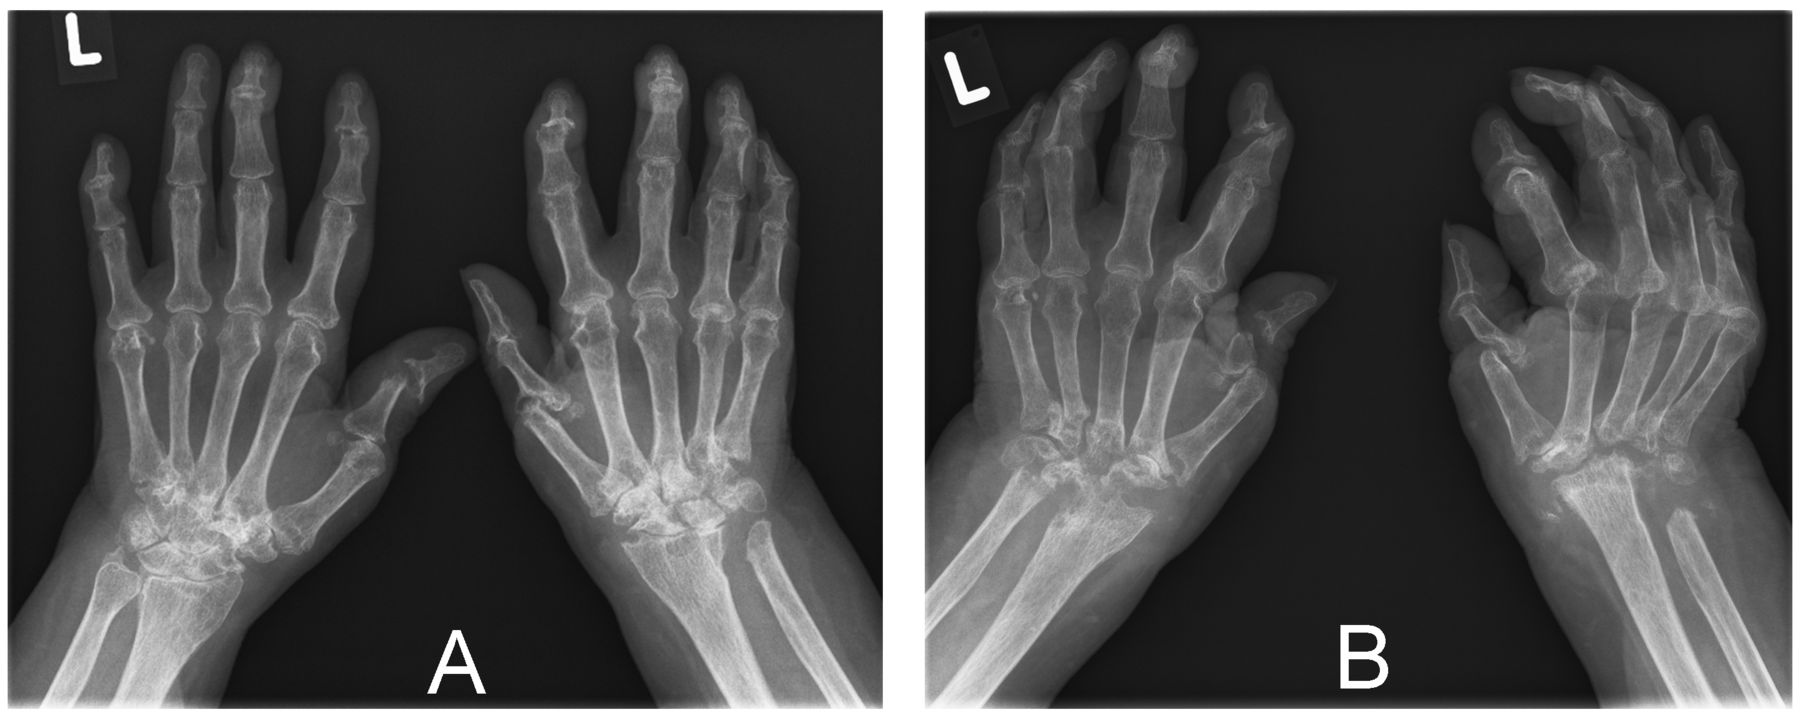 Missing Wrists In A Patient With Rheumatoid Arthritis A Matter Of Compliance The Journal Of Rheumatology